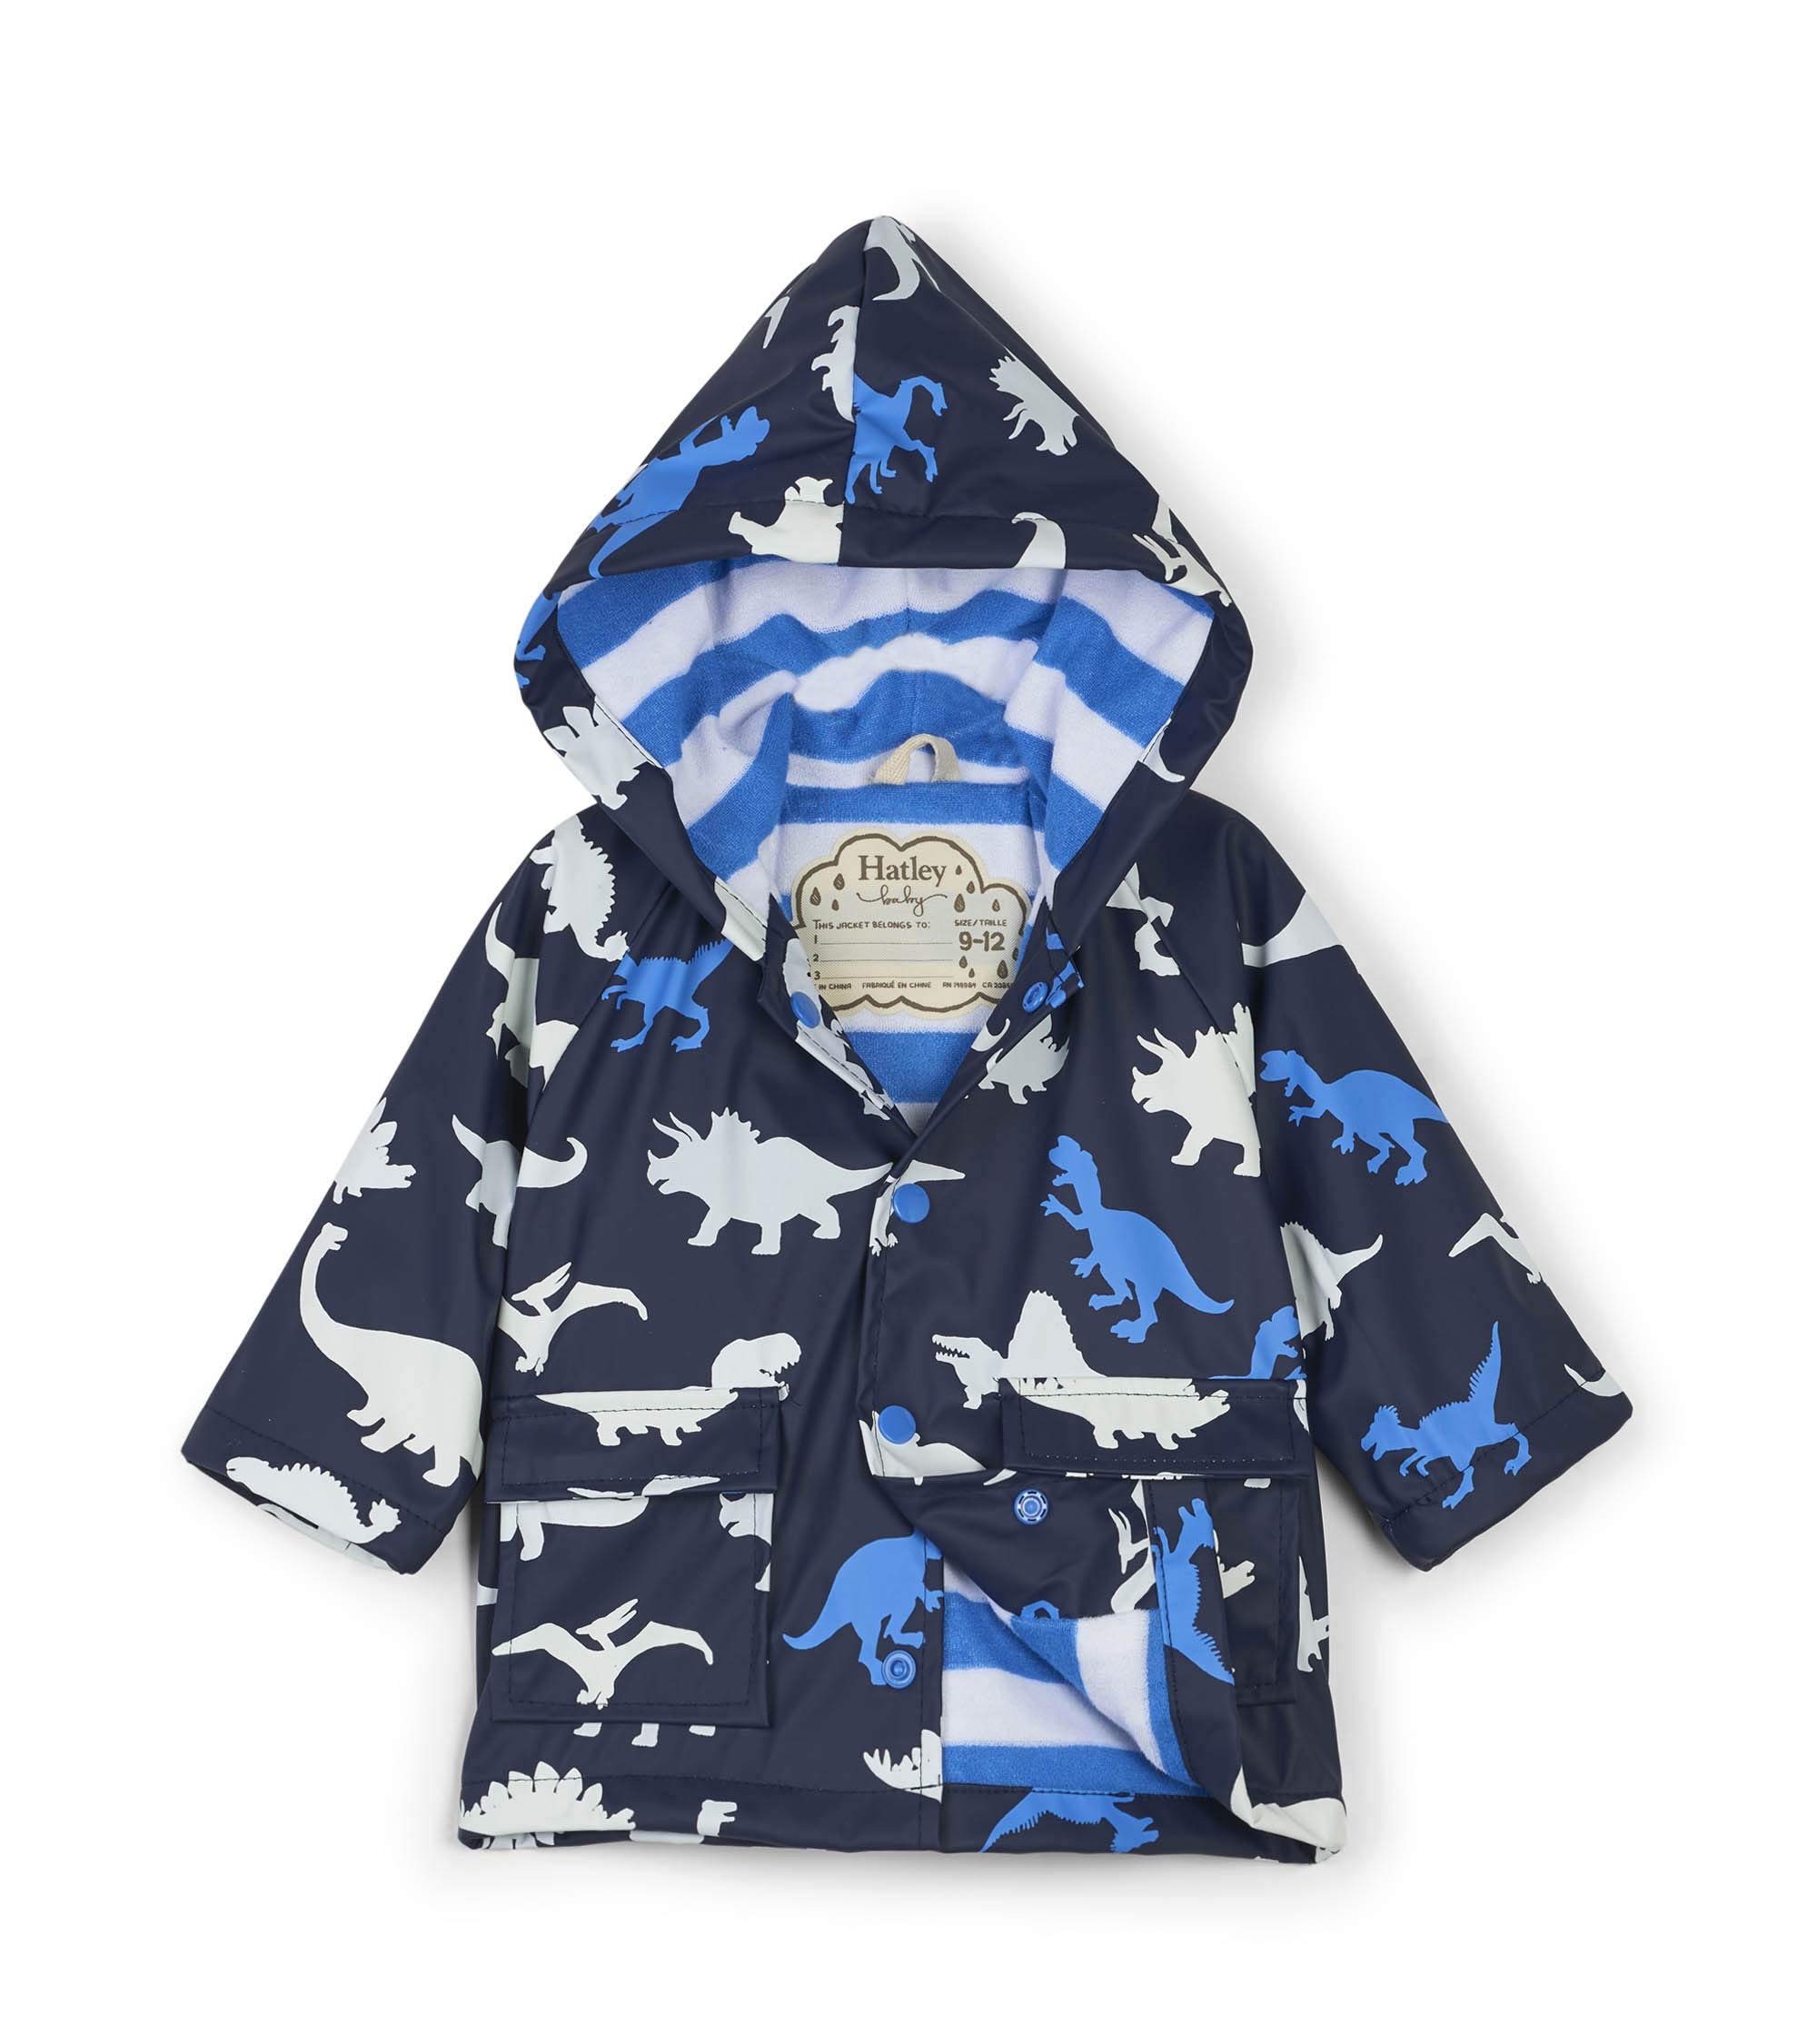 Hatley Baby Boys Printed Raincoats, Color Changing Dino Herd, 12-18 Months by Hatley